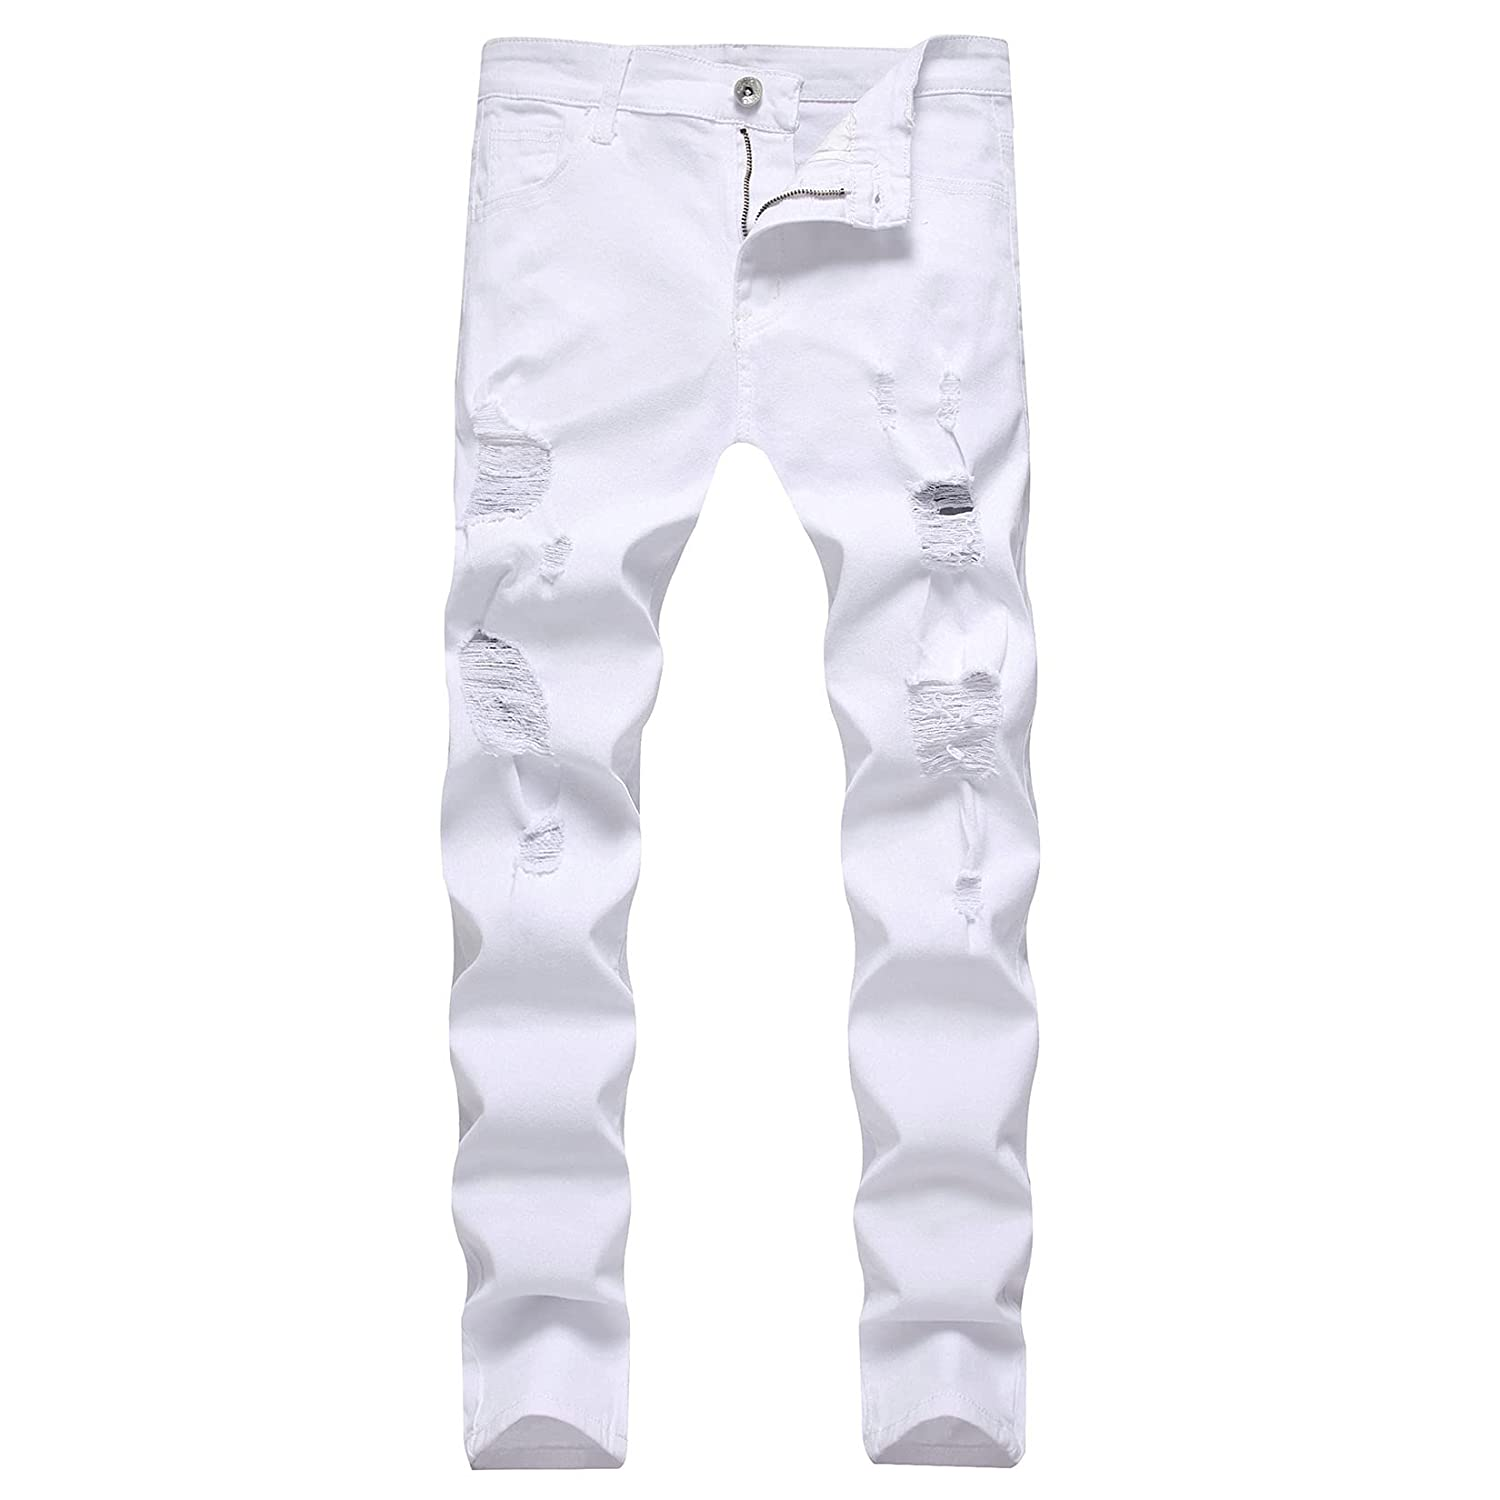 Men's New Orleans Mall Ripped Manufacturer OFFicial shop Skinny Biker Jeans Fit Pa Slim Distressed Destroyed